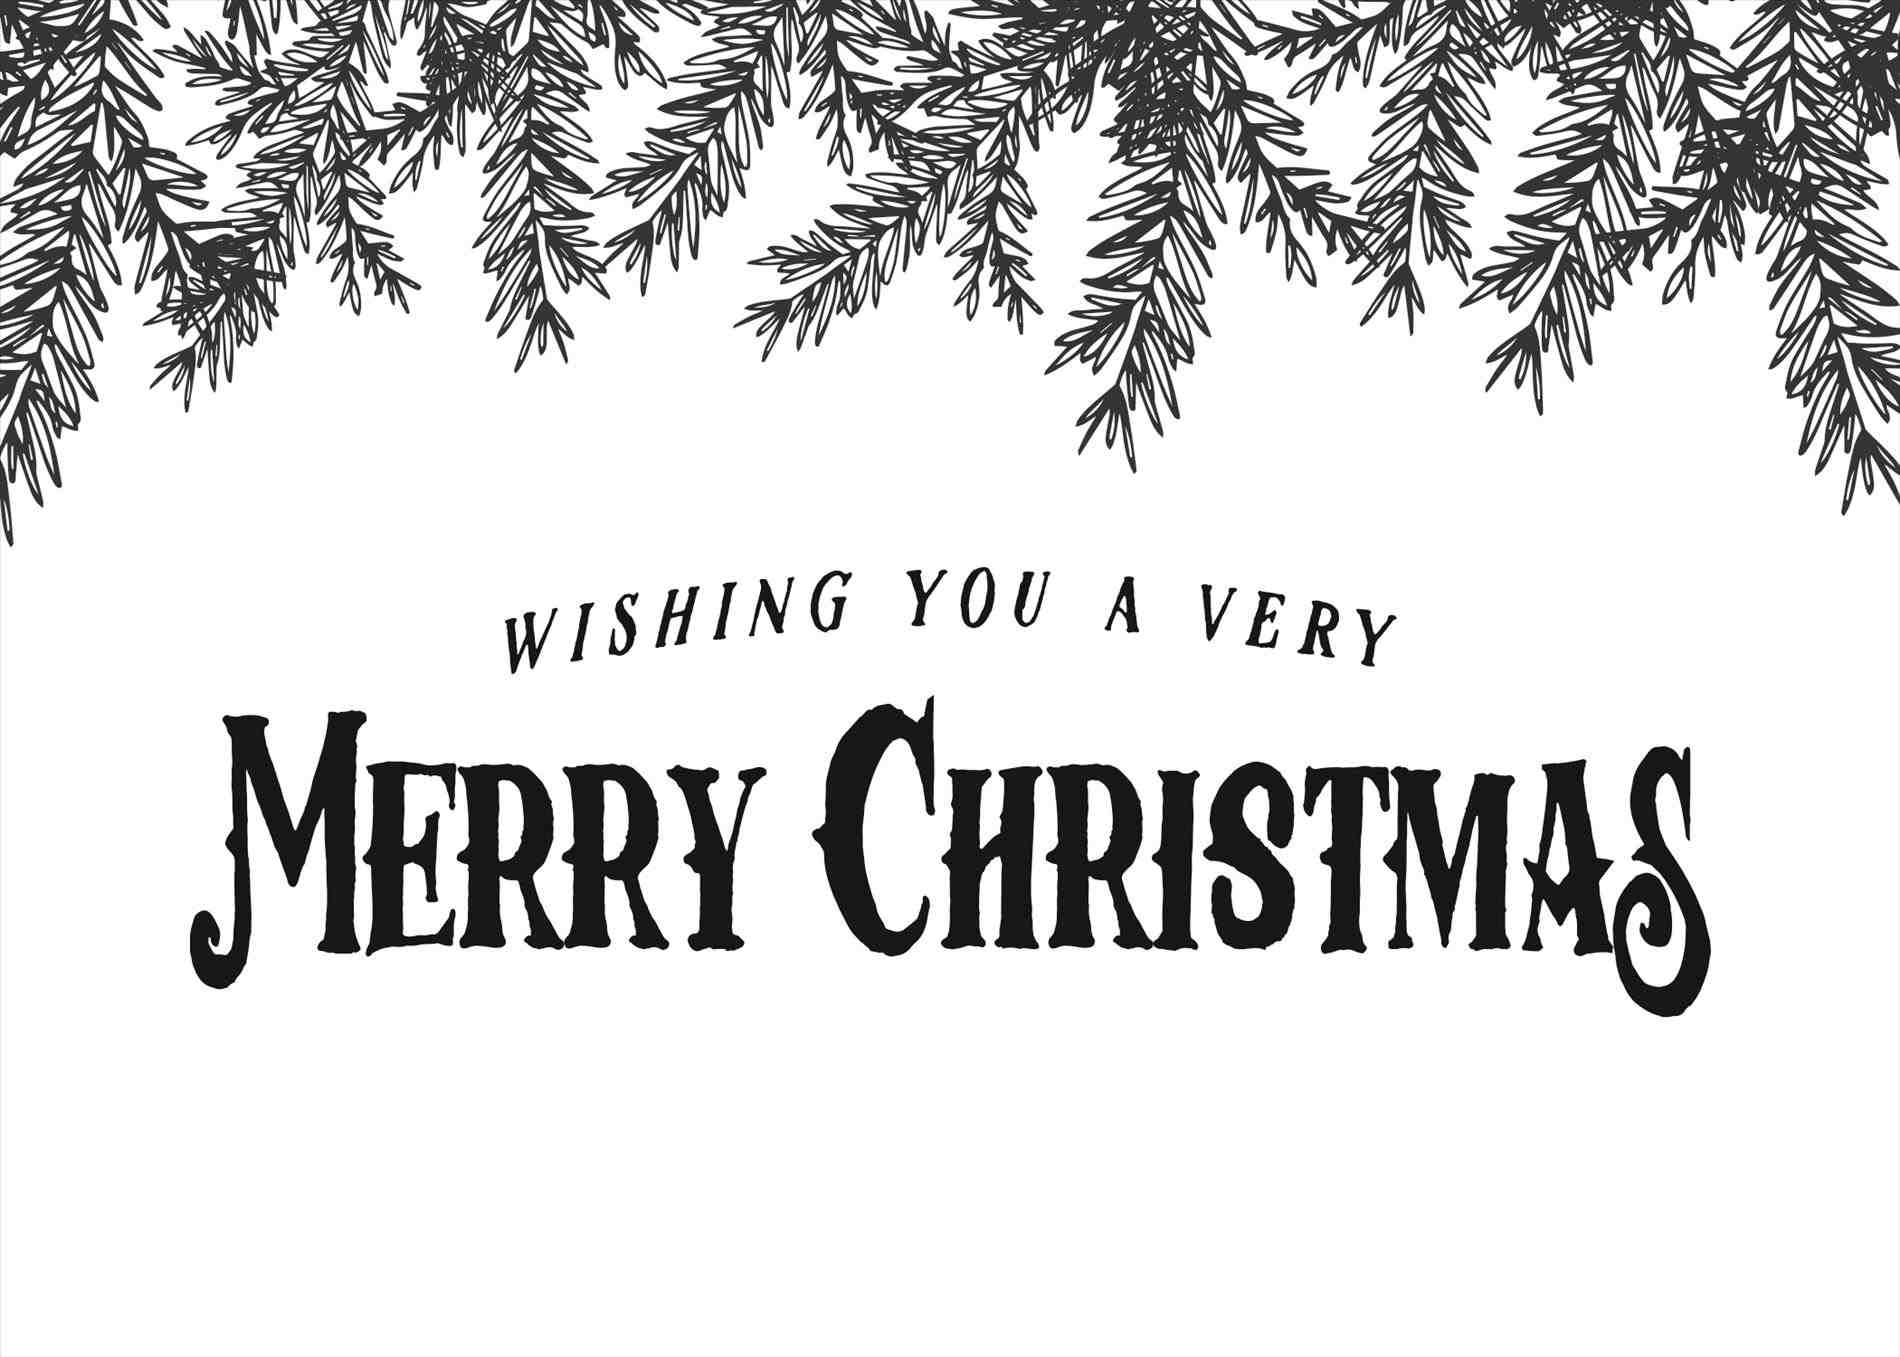 Merry Christmas Black And White Favorite Merry Christmas